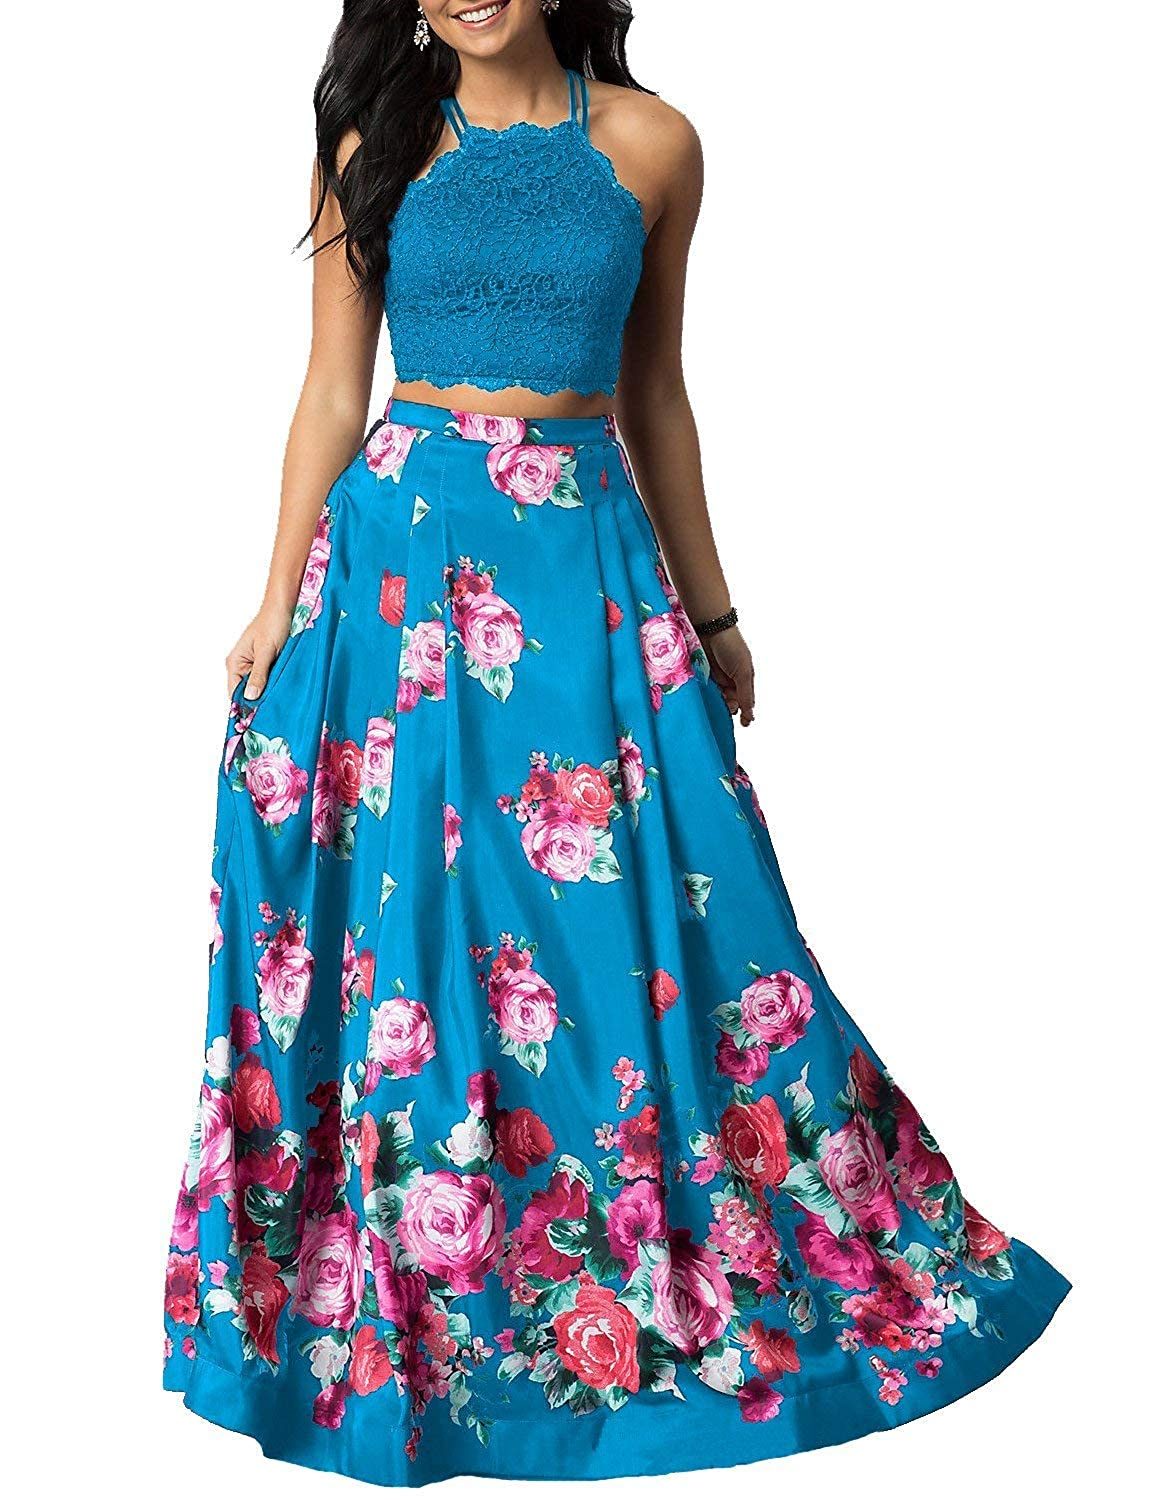 bluee Sulidi Women's Halter Two Pieces Floral Printed Prom Dresses Long Satin Pleated Evening Formal Gown C095